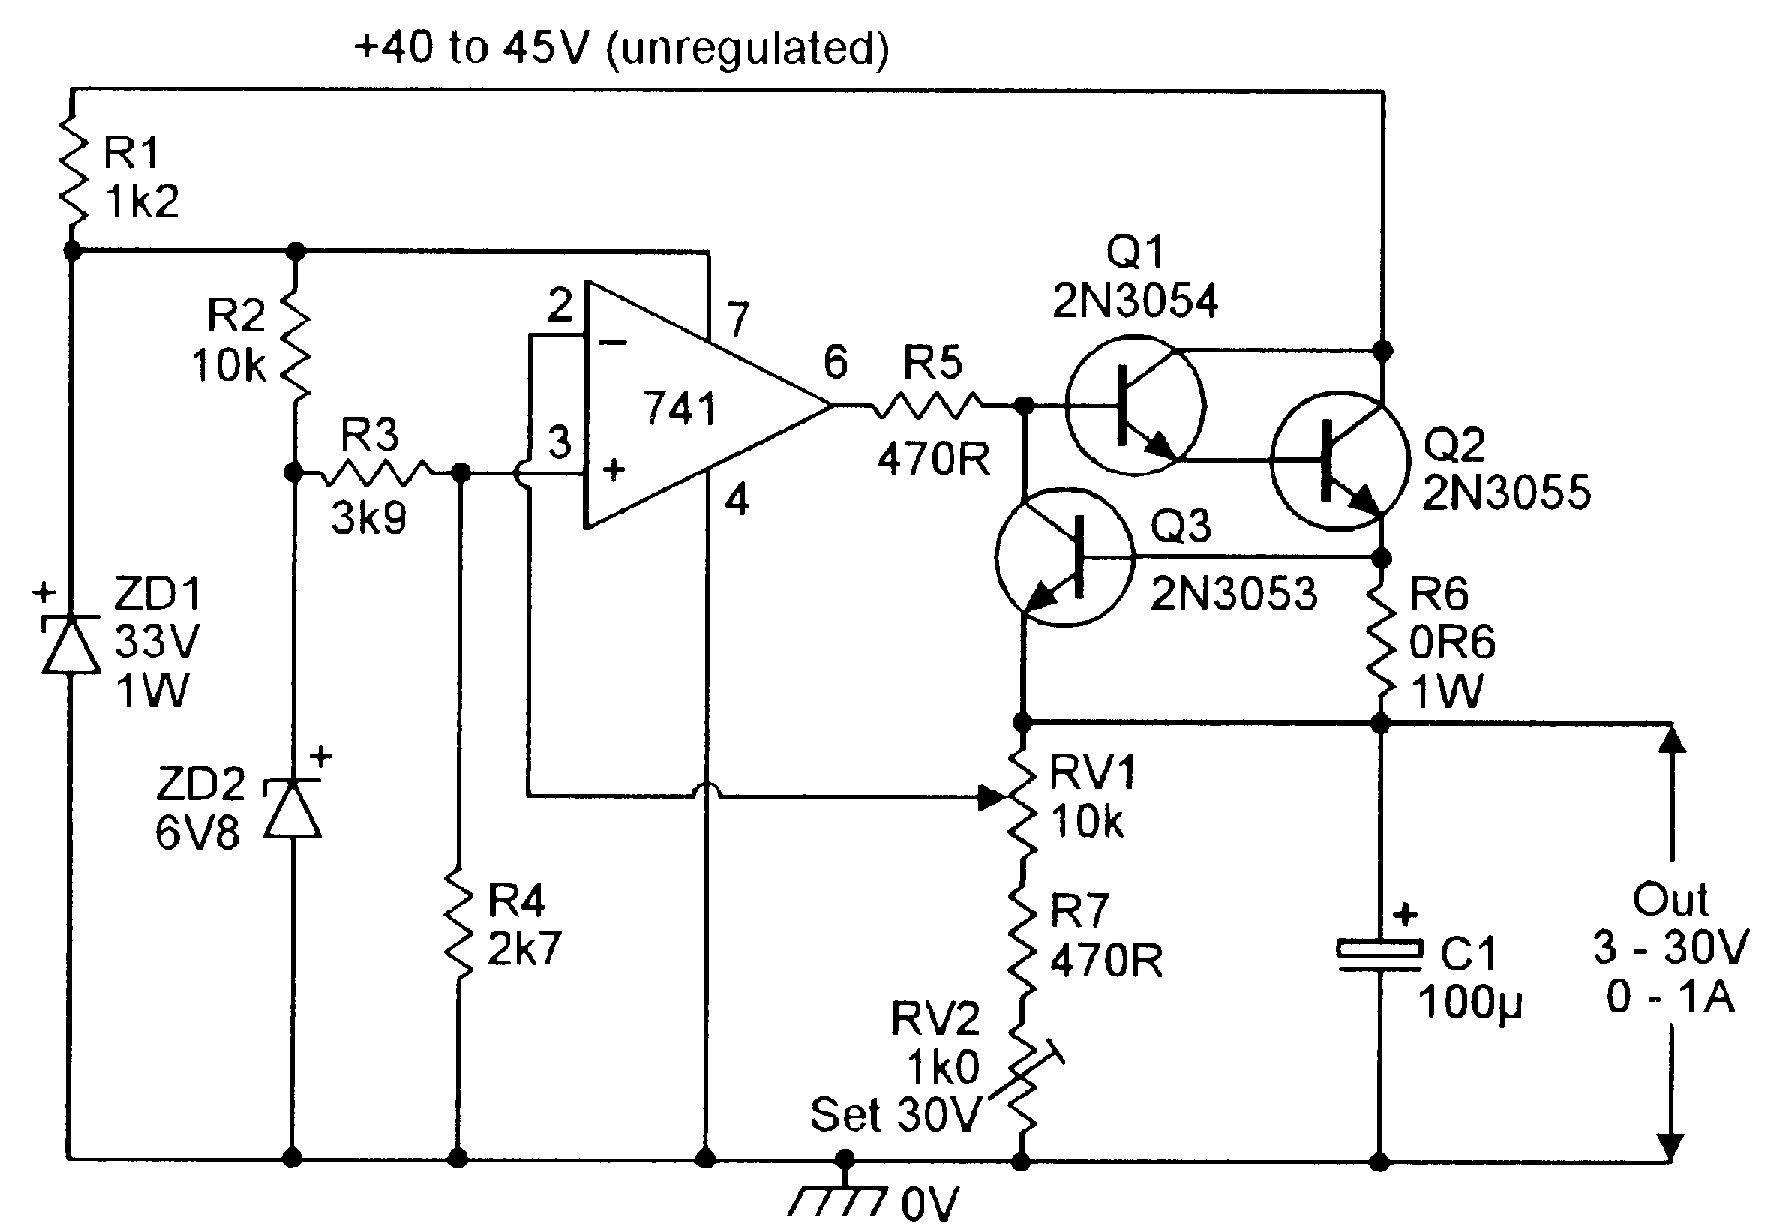 3v to 30v stabilized psu with overload protection